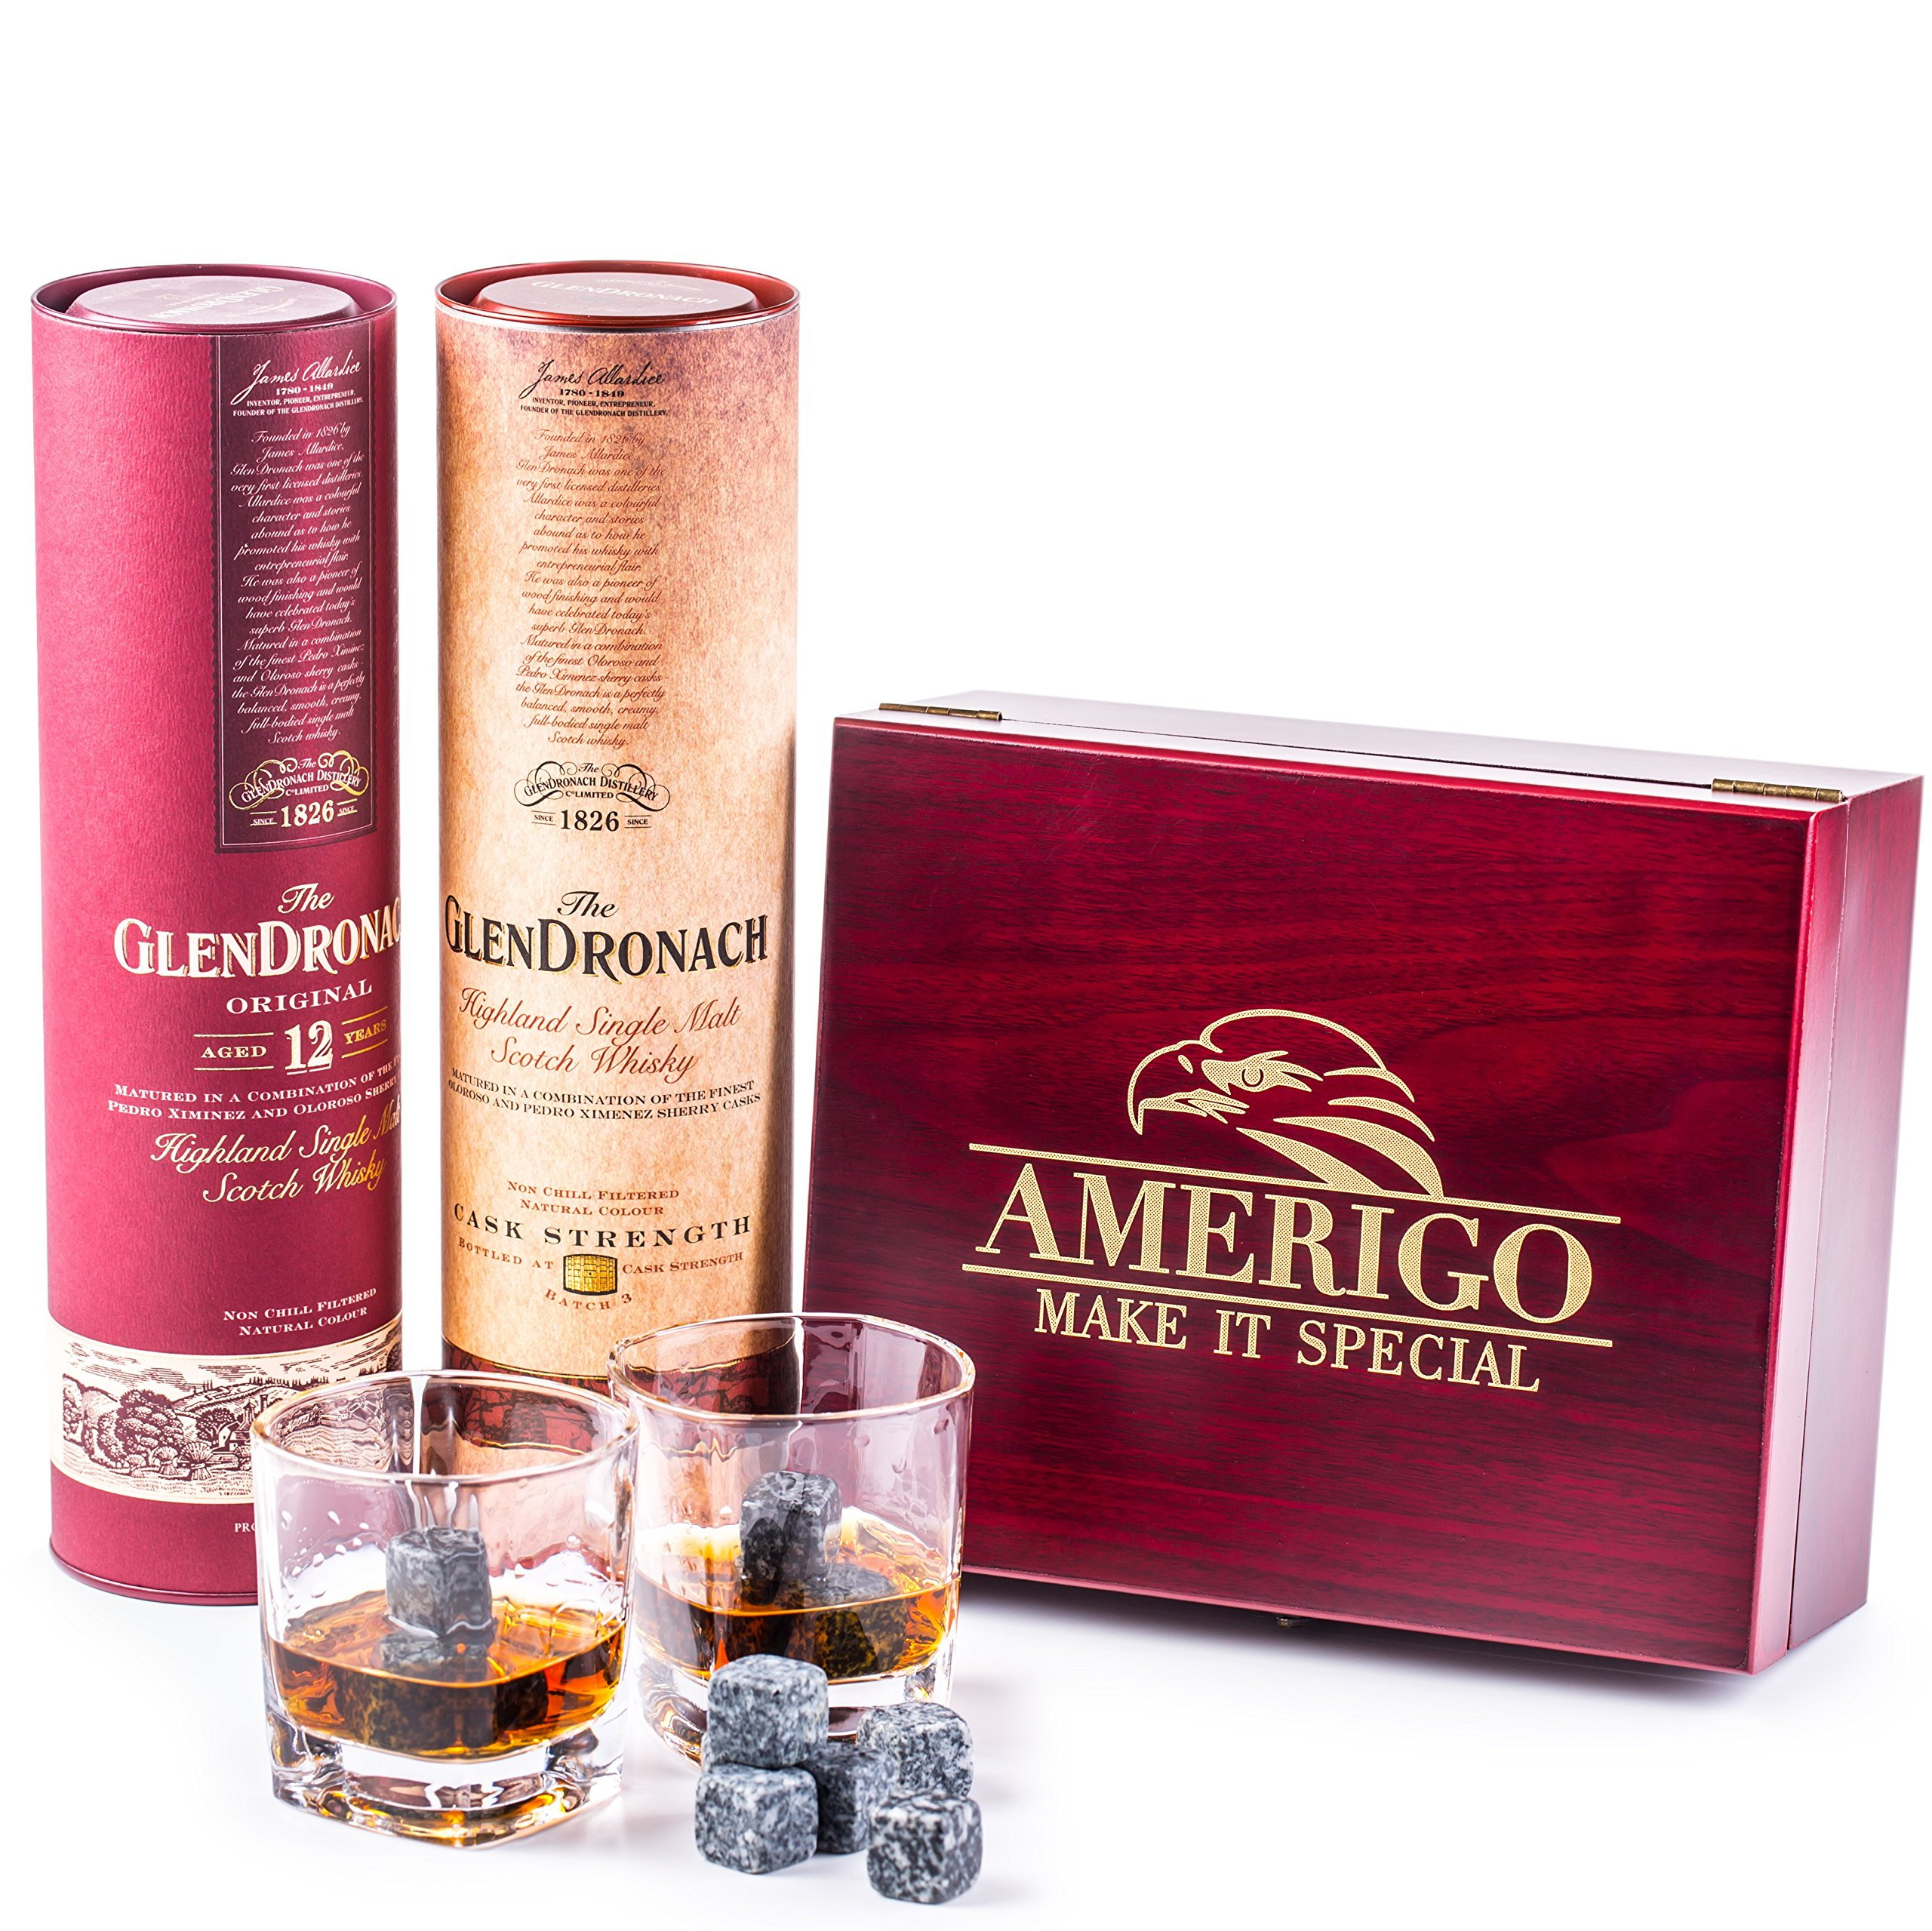 Impressive Whiskey Stones Gift Set with 2 Glasses - Be Different When Choosing a Gift - Luxury Handmade Box with 8 Granite Whiskey Rocks, Ice Tongs & Velvet Bag - Ice Cubes Reusable - Best Man Gift by Amerigo (Image #1)